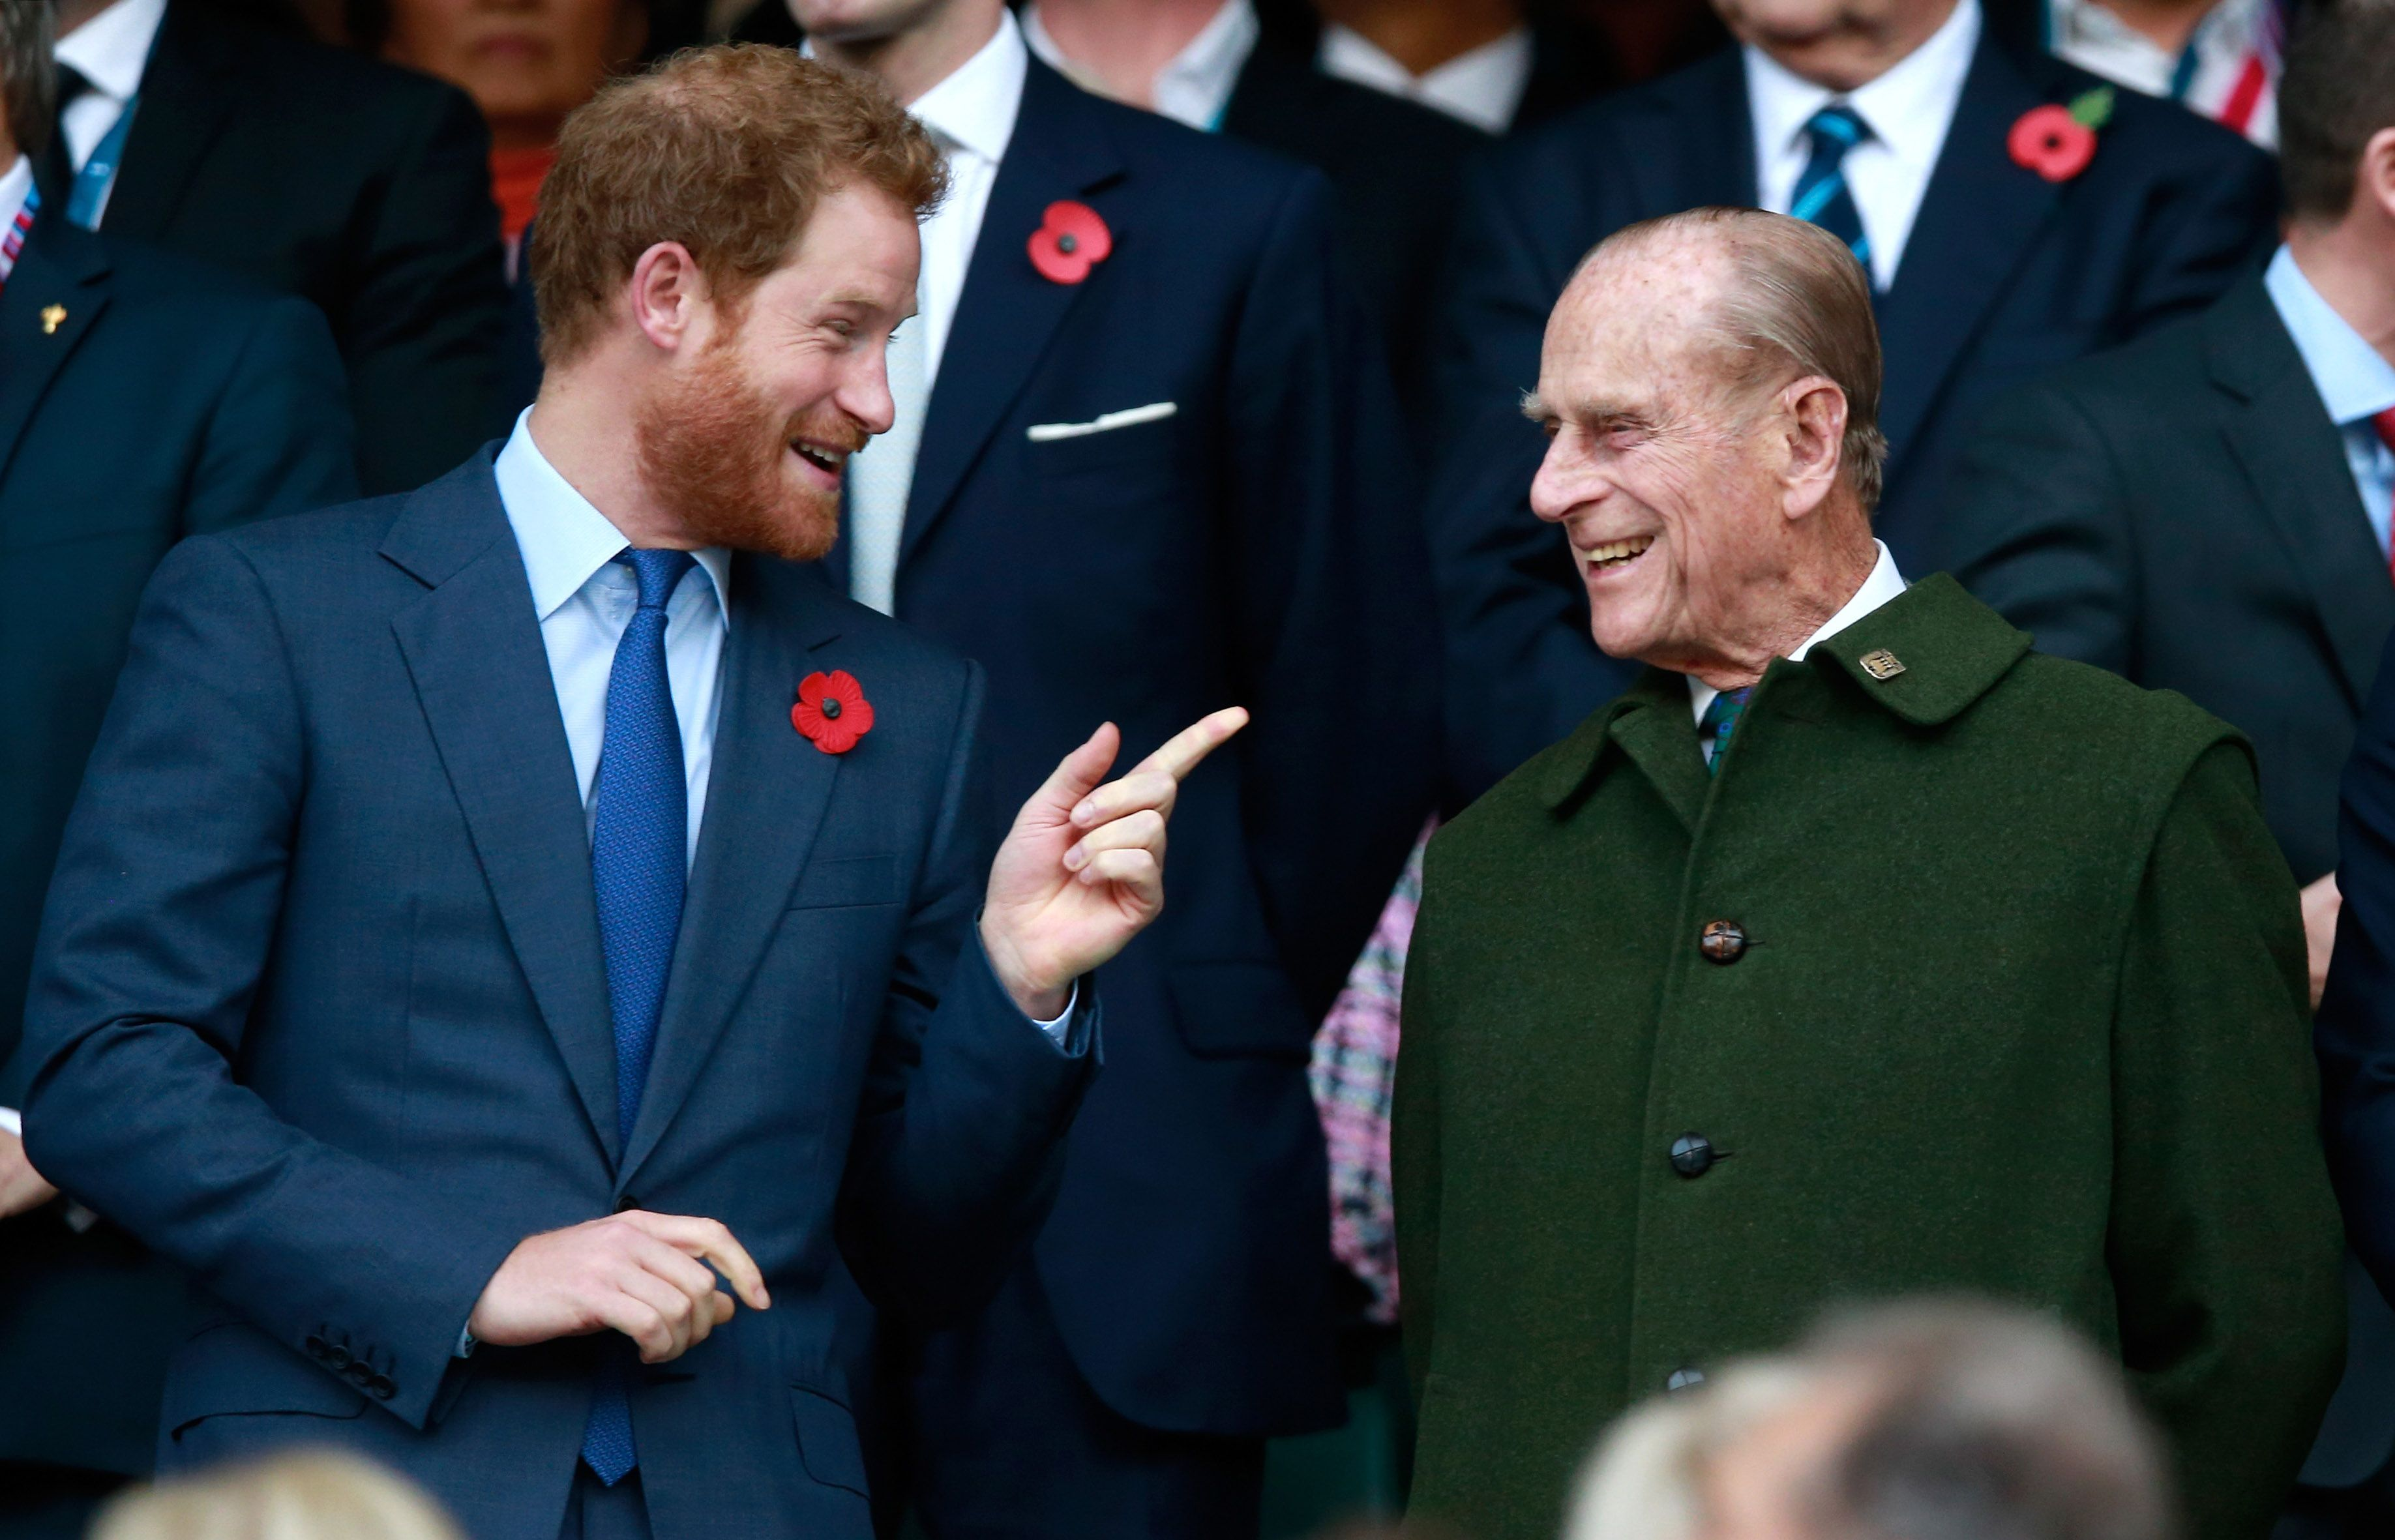 Prince Harry may need to leave the US soon in order to attend Prince Philip's funeral